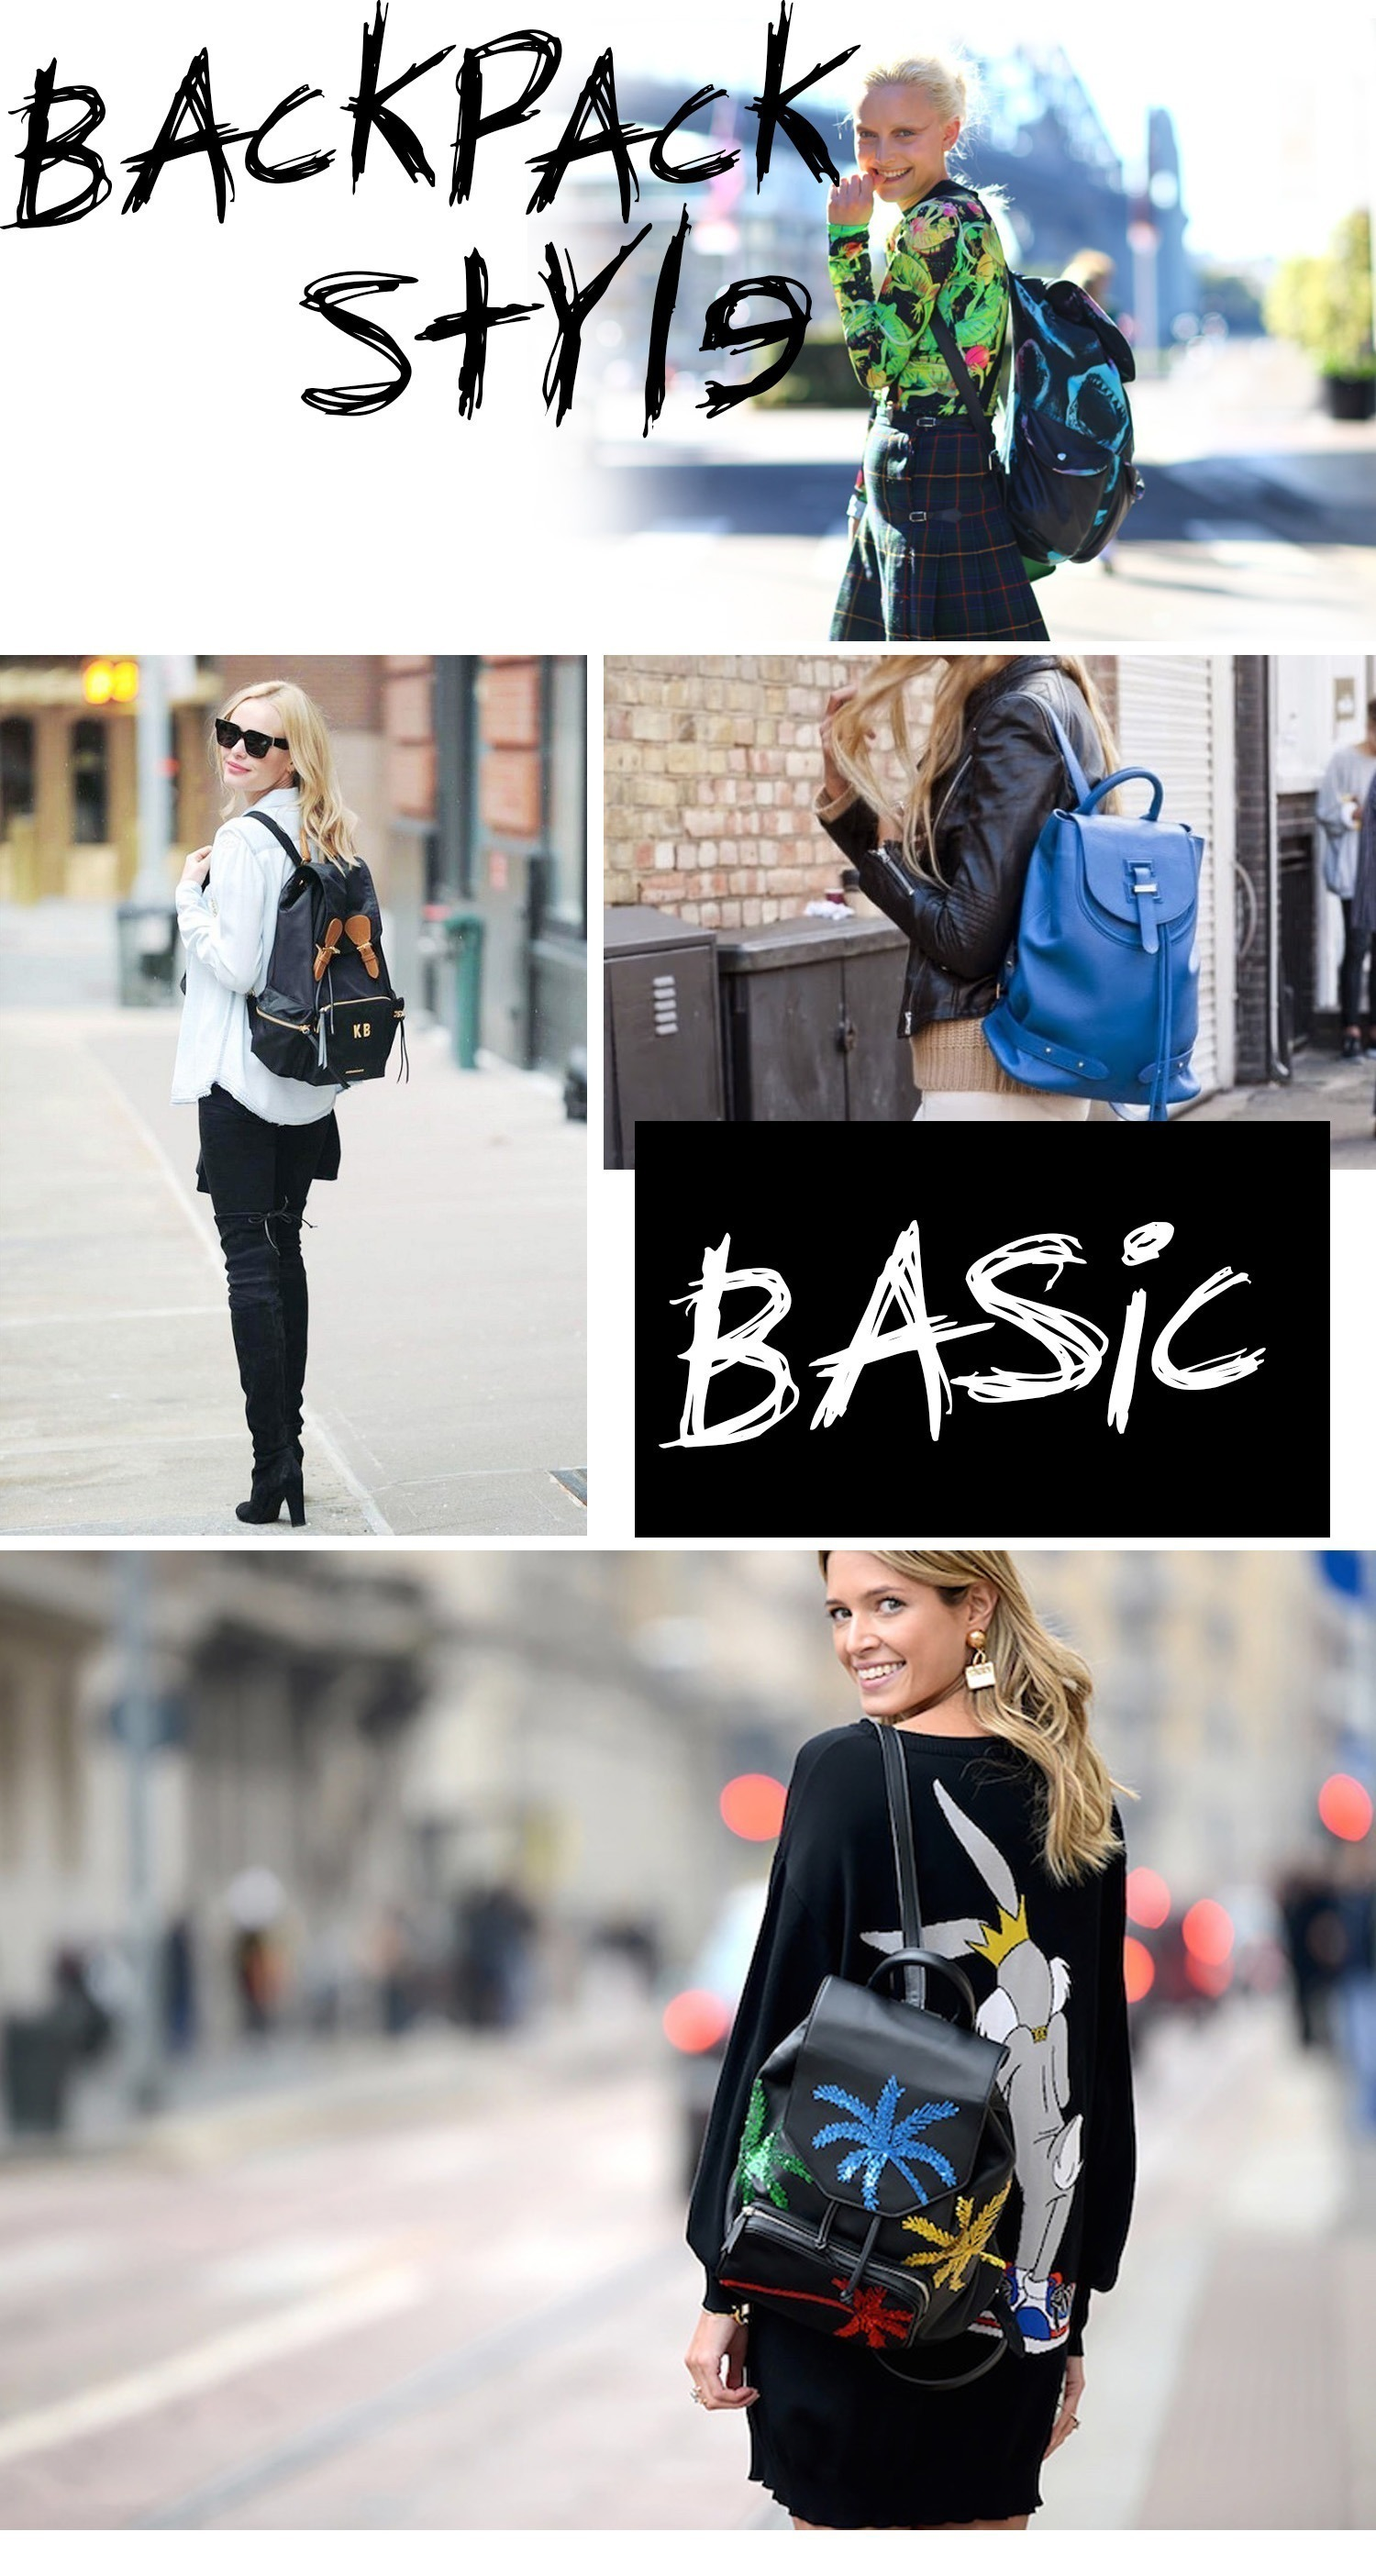 BackPack-Style-1